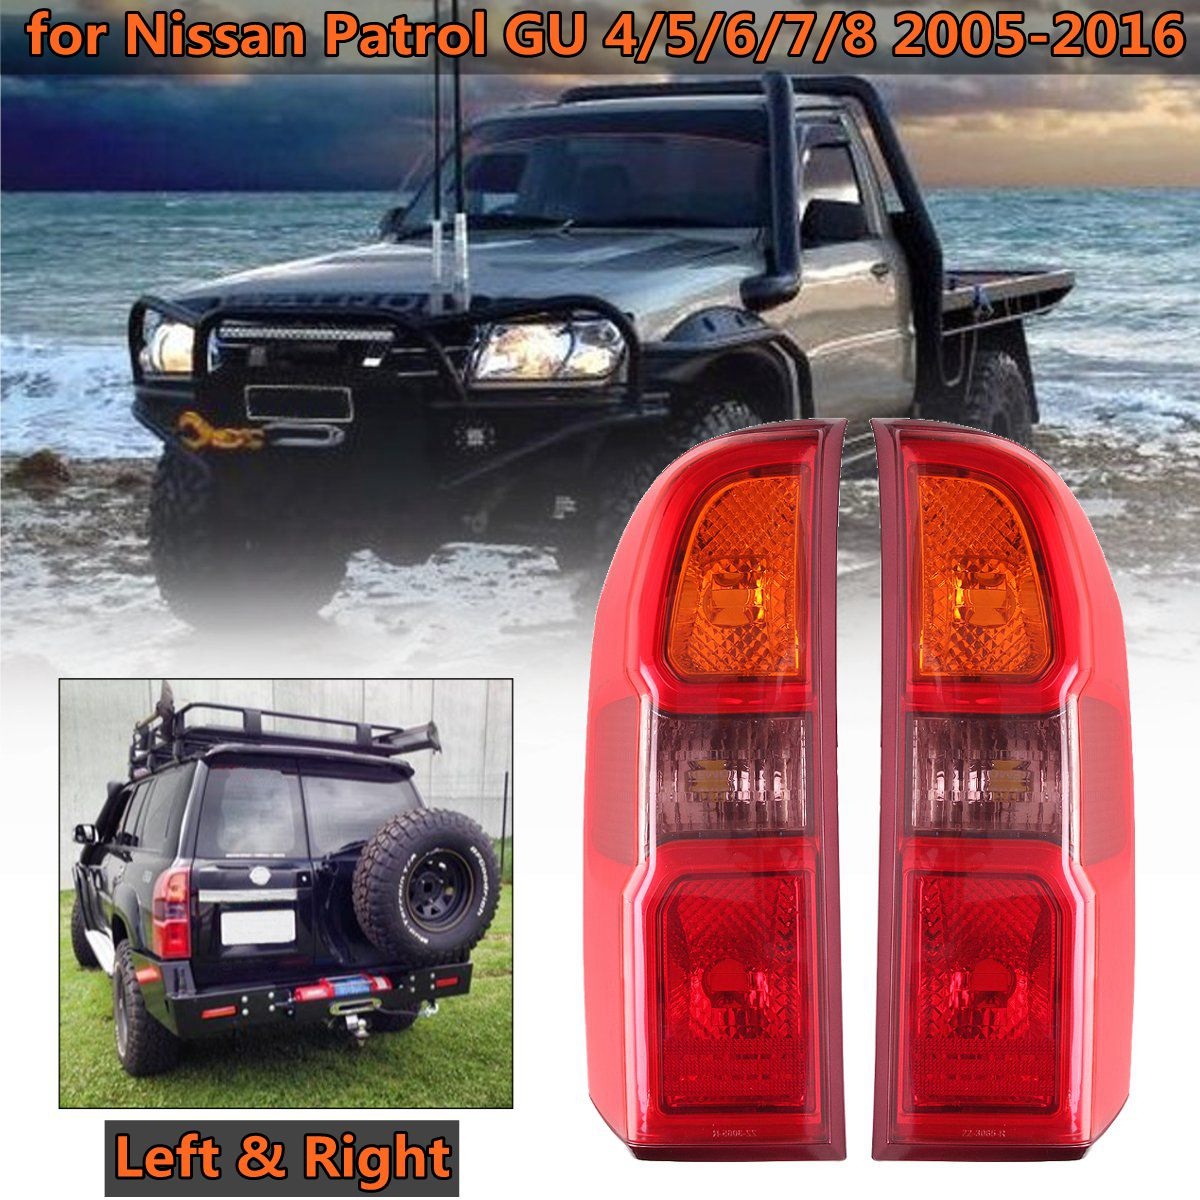 For Nissan Patrol GU 4/5/6/7/8 2005 2006 2007 2008 2009 2010 2011 2012~2016 Brake Lamp Rear Driver Passenger Side Tail Light brake lamp rear driver passenger side tail light for nissan patrol gu 4 5 6 7 8 2005 2006 2007 2008 2009 2010 2011 2012 2016